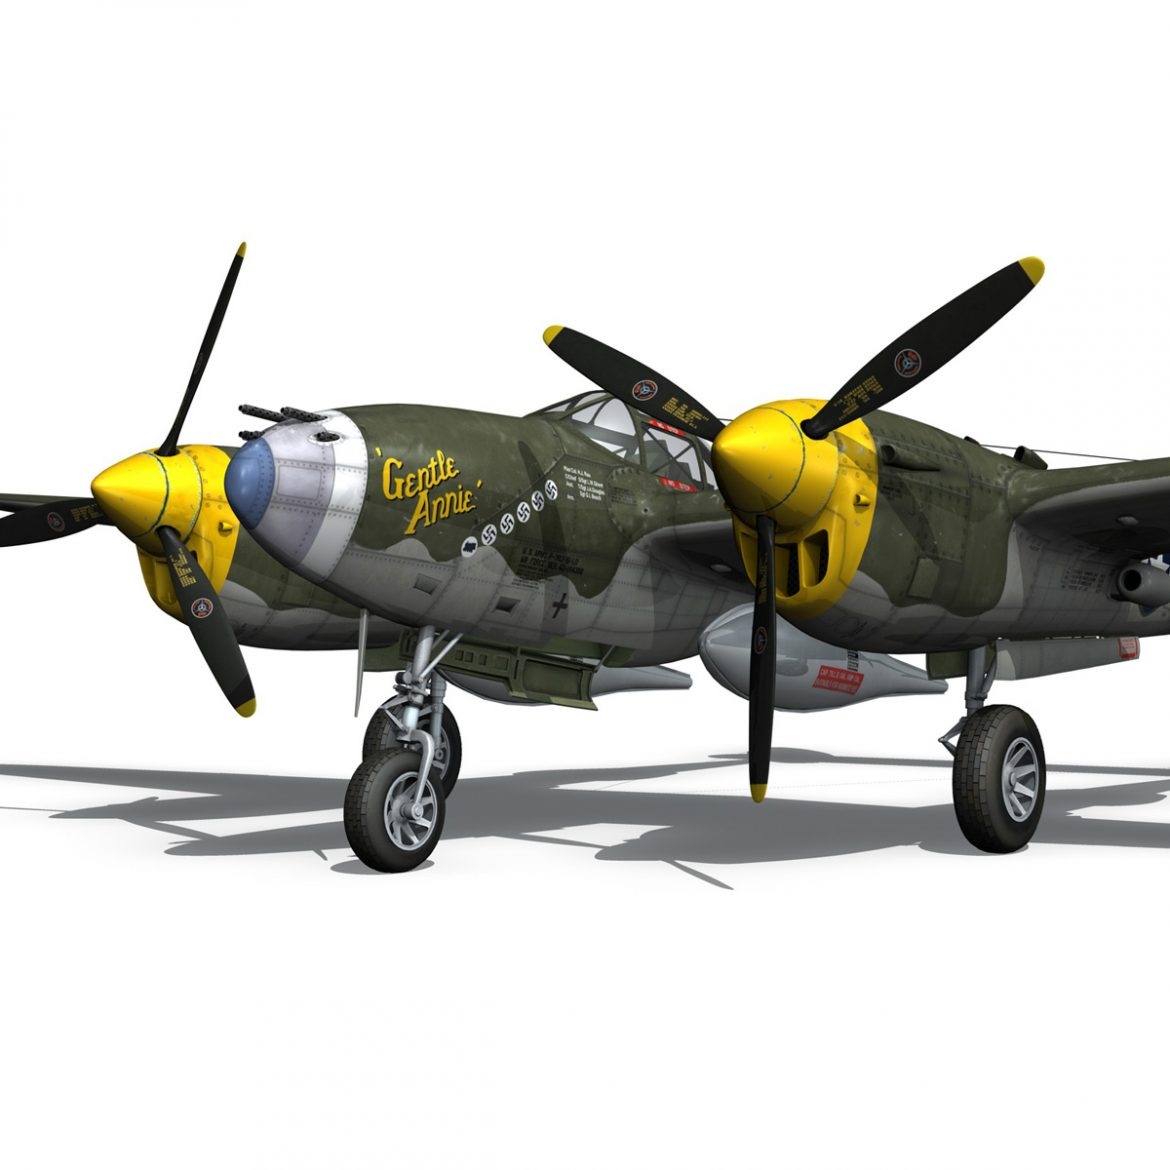 lockheed p-38 lightning – gentle annie 3d model fbx c4d lwo obj 300088